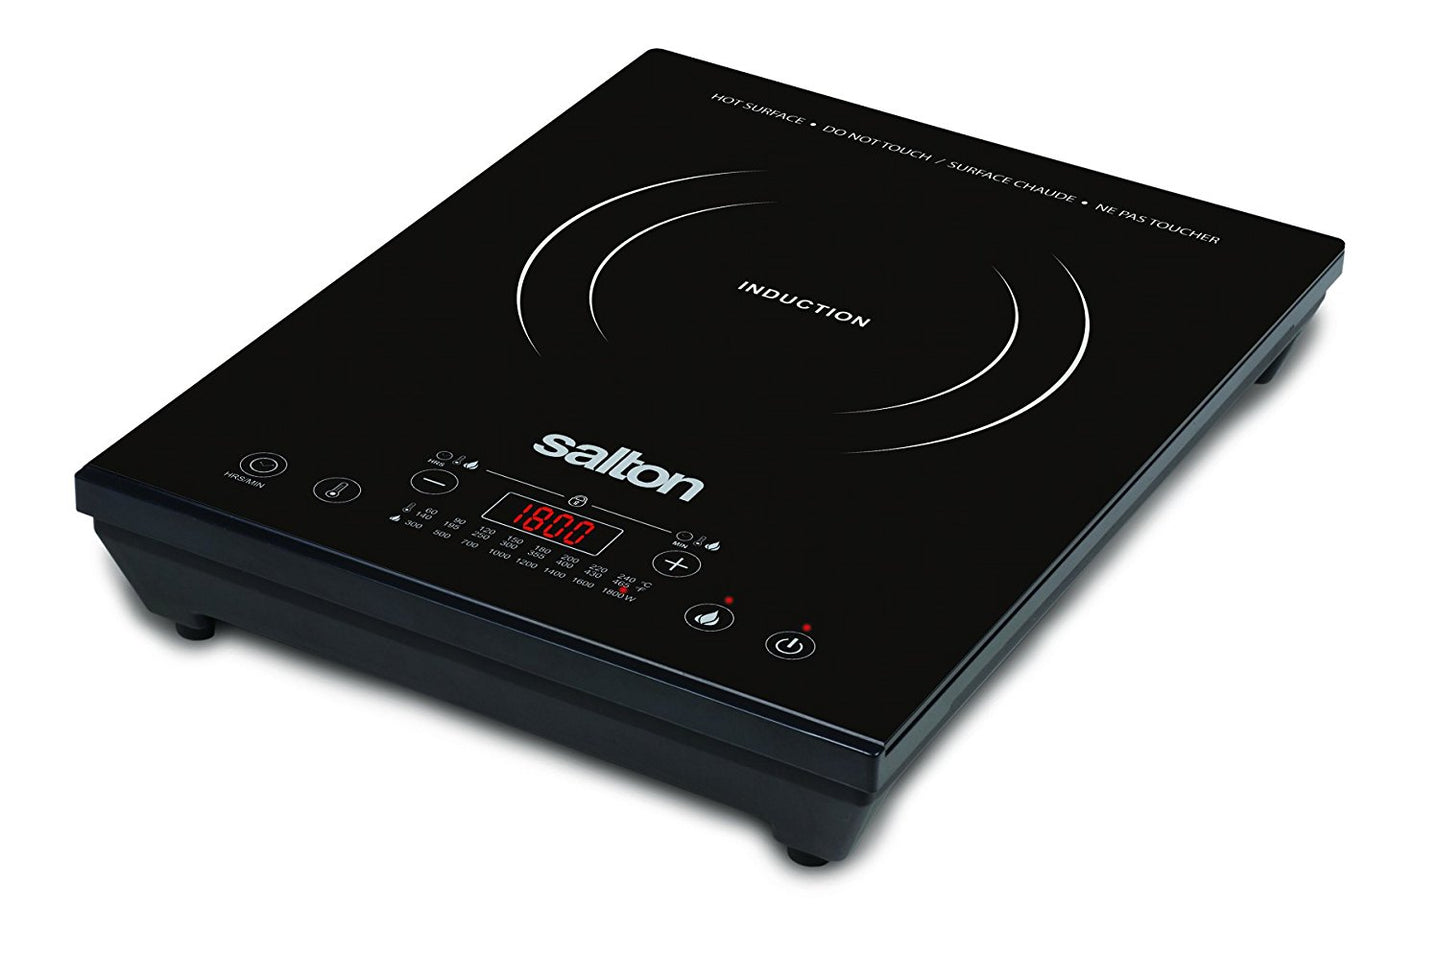 Salton Portable Induction Cooktop, Black